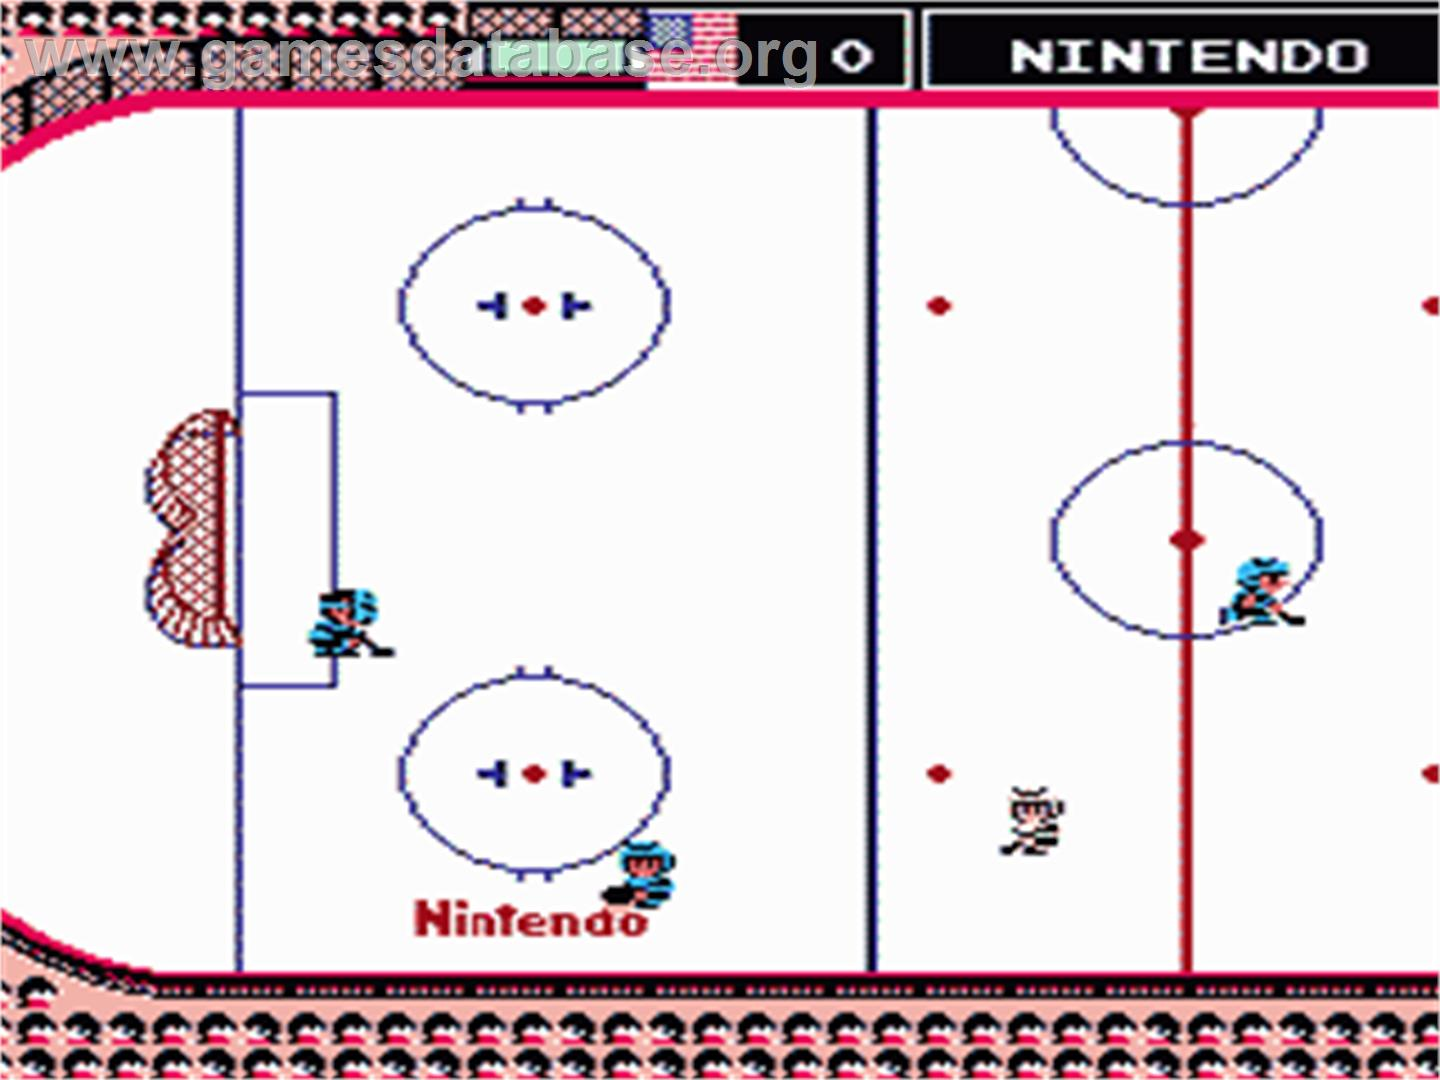 Ice Hockey - Nintendo NES - Artwork - In Game